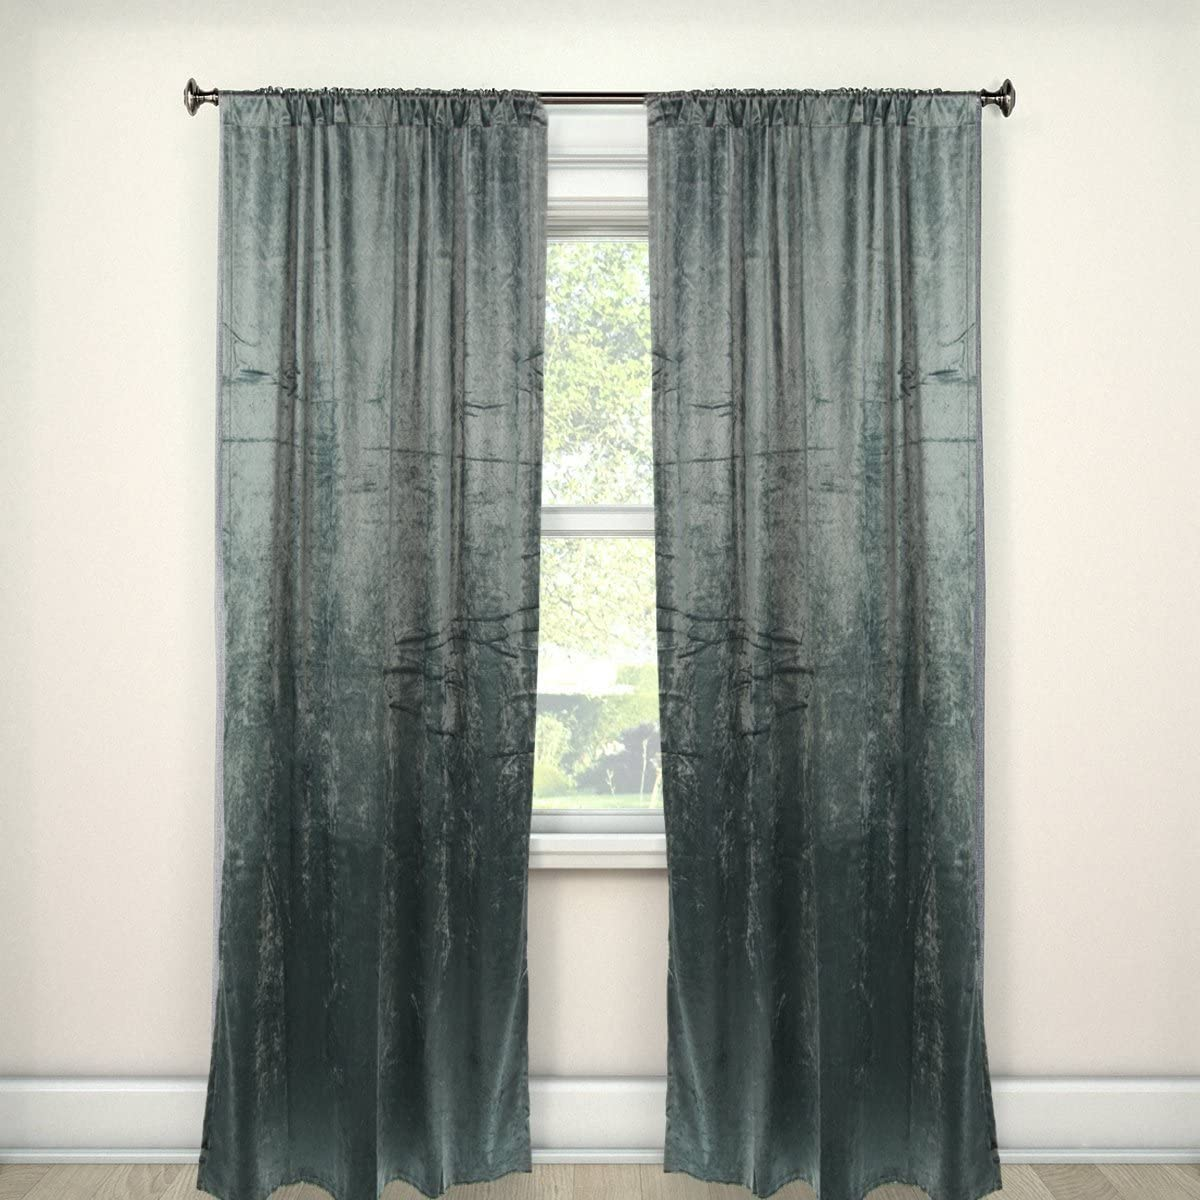 Amazon Com Umbra Set Of 2 Drapes Window Curtains For Living Room Curtains For Bedroom 50 X 96 Inch Curtains Home Decor Home Kitchen